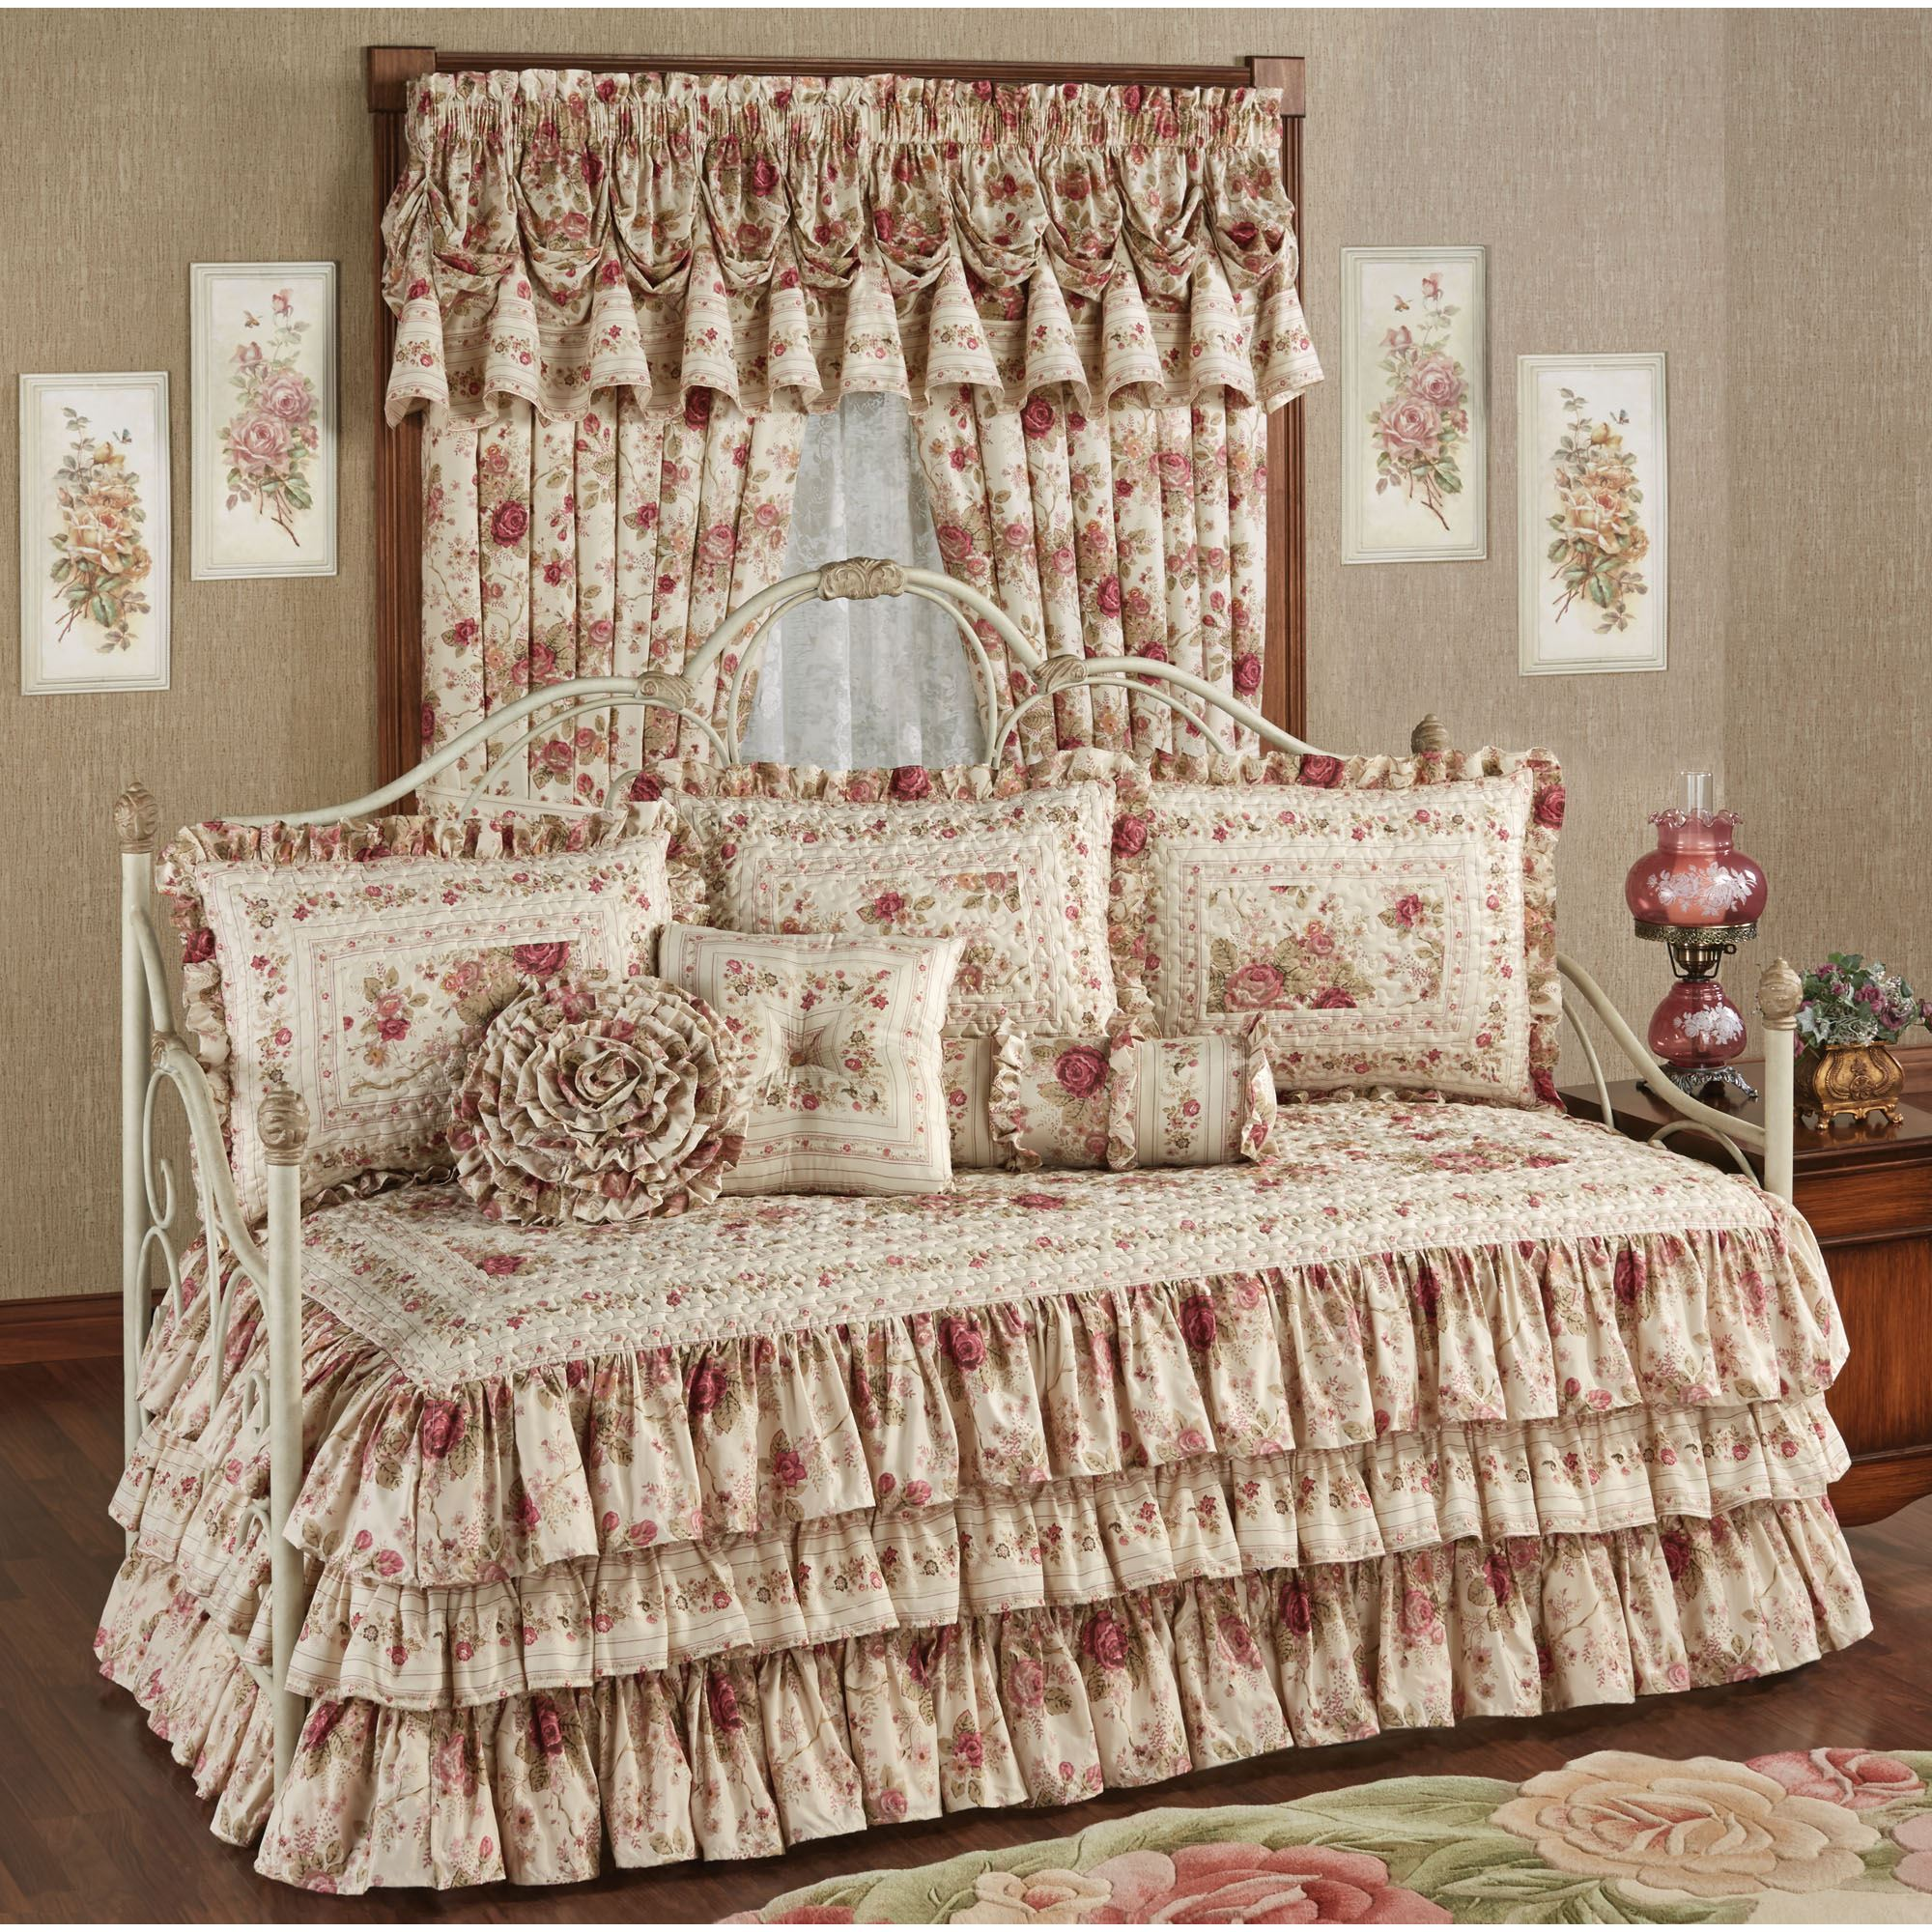 brown daybed bedding sets photo - 10